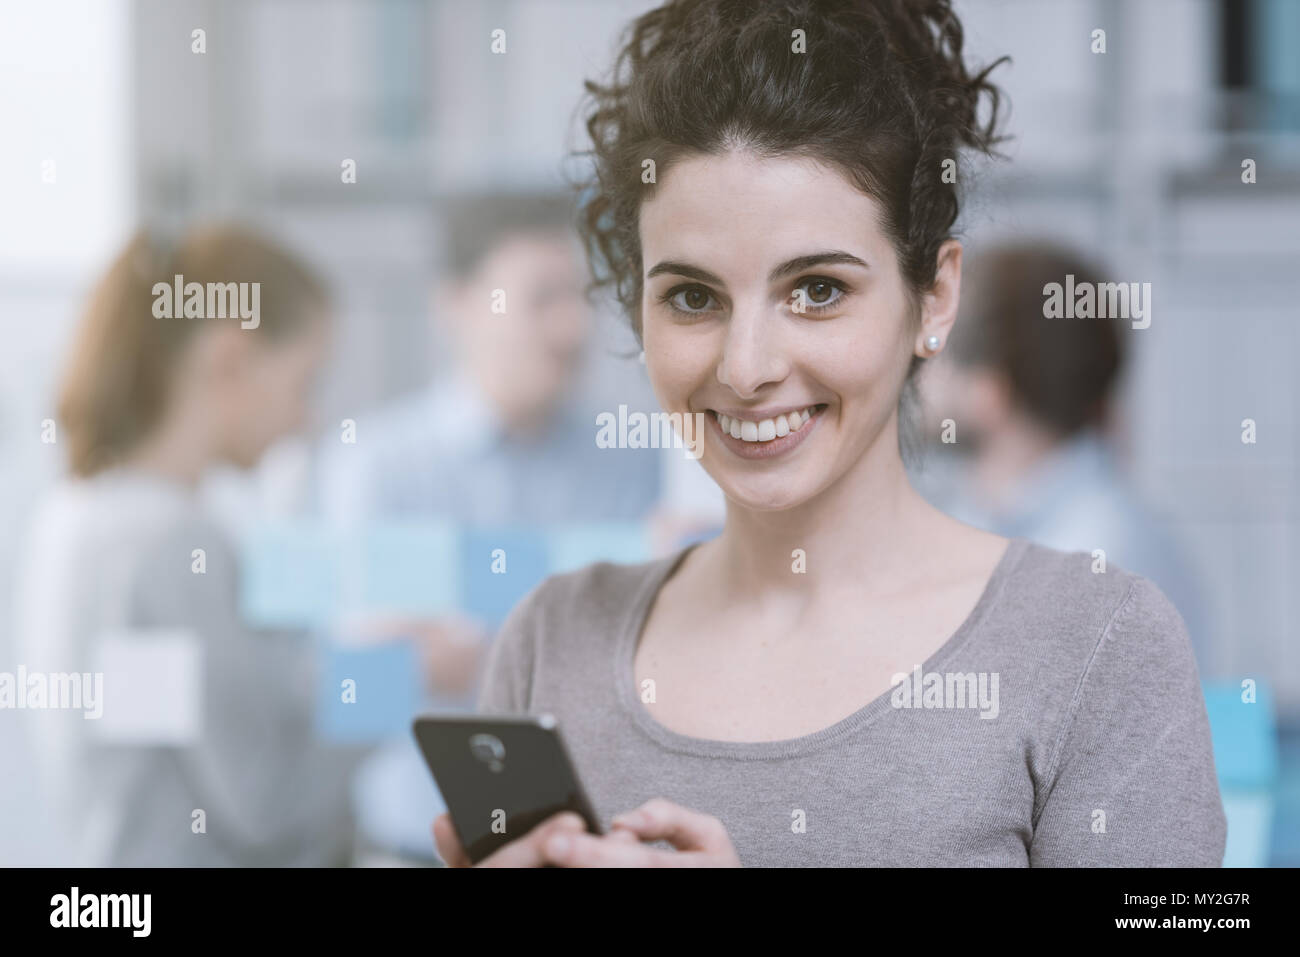 Young smiling woman connecting with her smartphone in the office and business people on the background - Stock Image